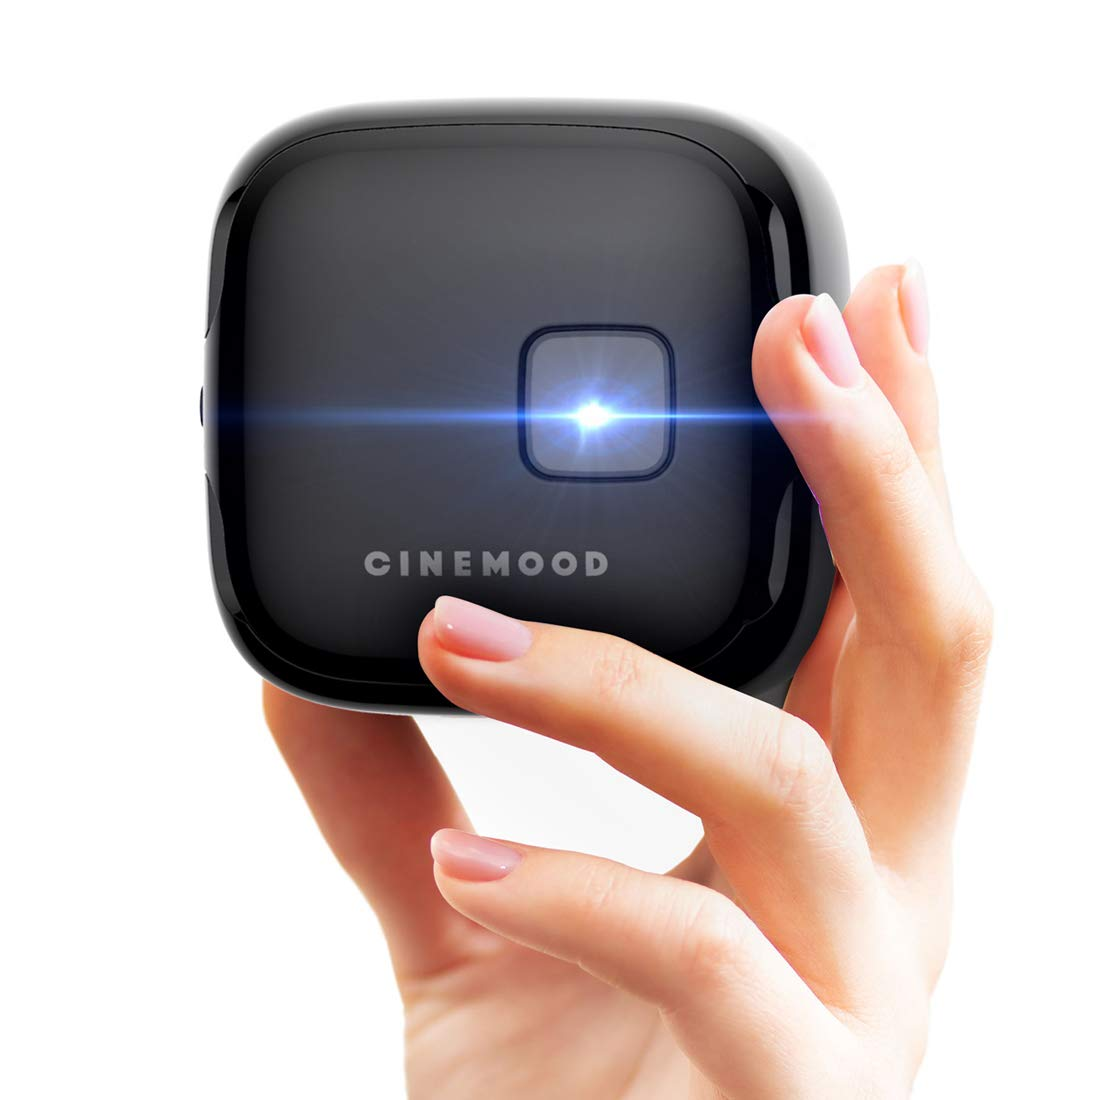 Amazon.com: CINEMOOD 360 - First 360° Interactive Portable Projector with  360 Degree Videos, Interactive Motion Games, Prime Video, Netflix, YouTube  & Disney. Switch on and Play.: Electronics